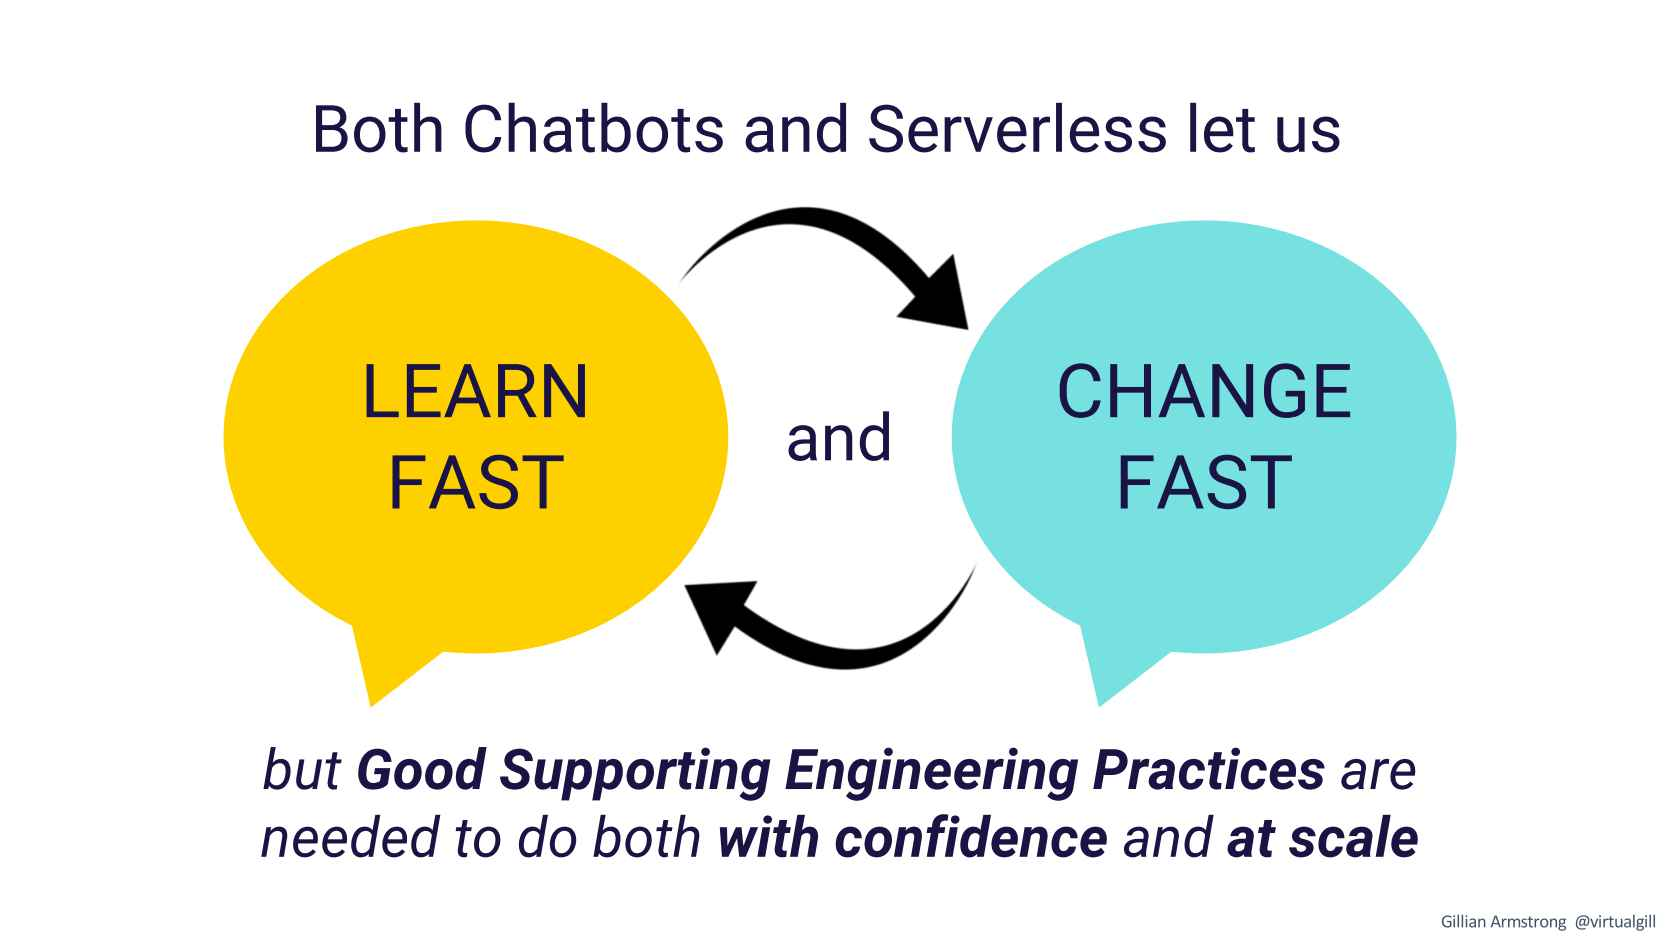 Serverless and Chatbots: A Match Made in the Cloud